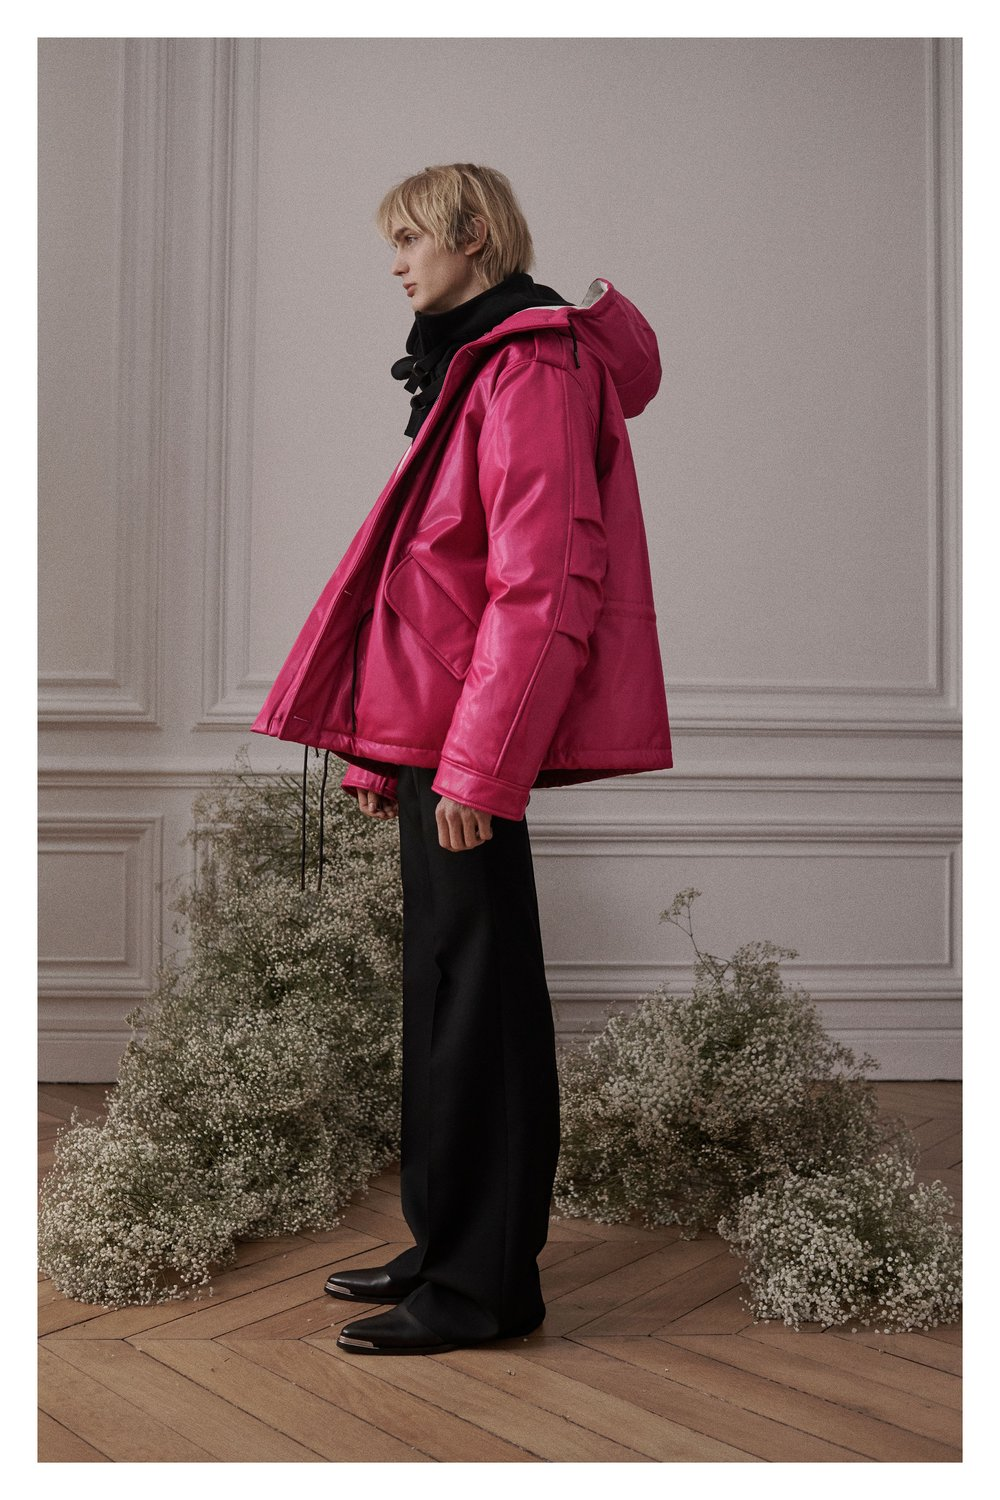 Hot Pink - Outerwear - Givenchy